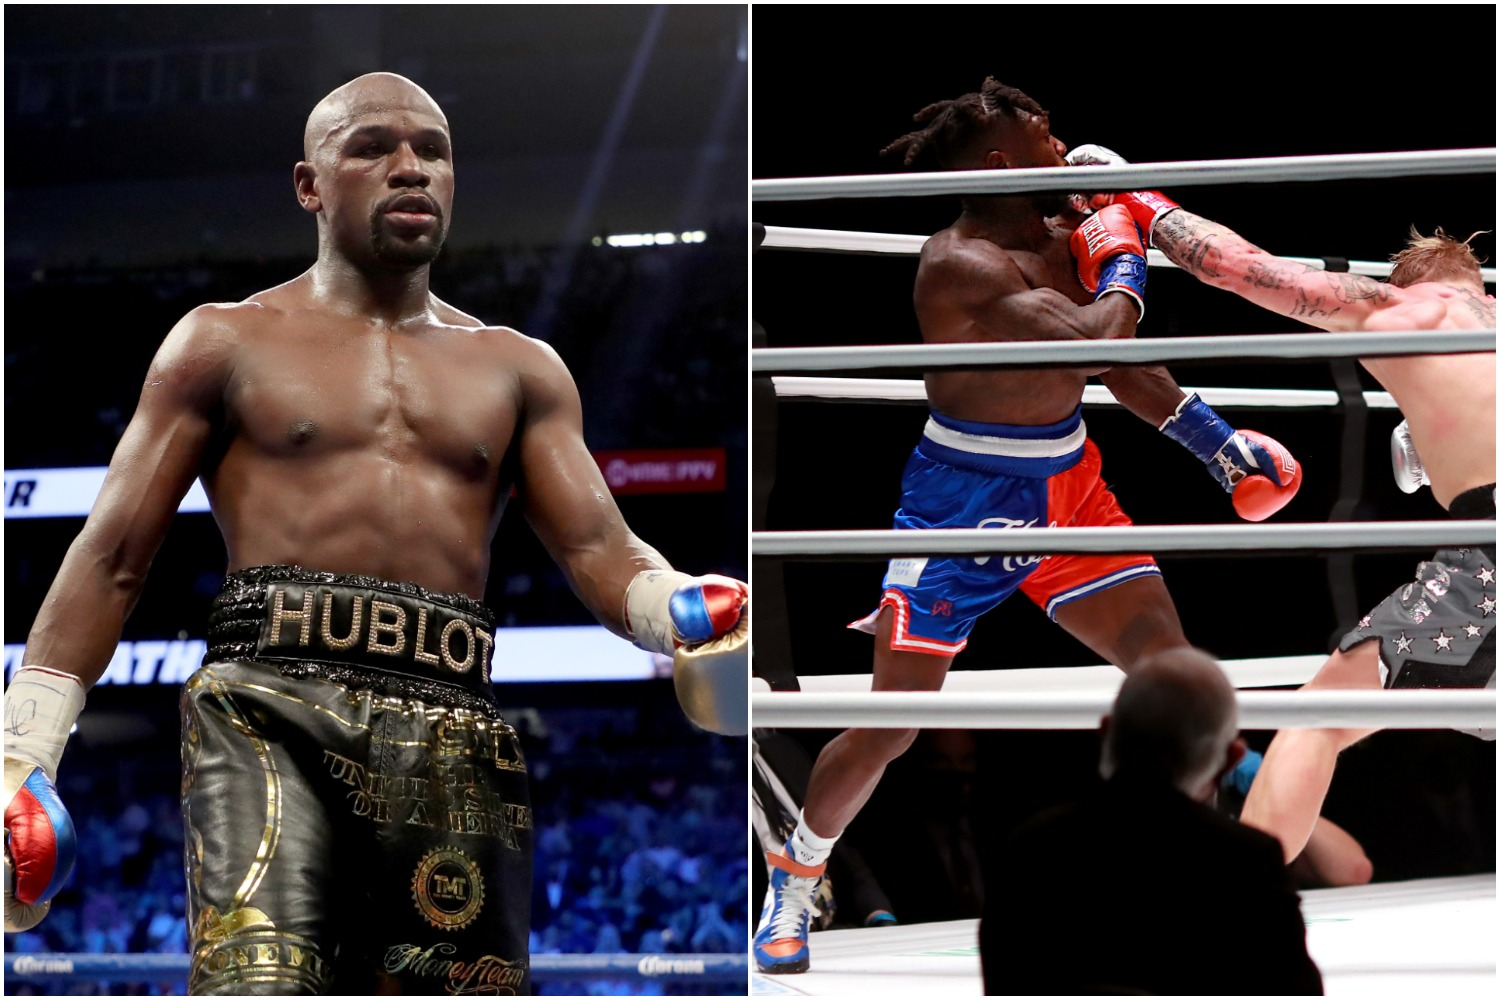 Floyd Mayweather Sends Stern Message to Black Community About Mocking Nate Robinson